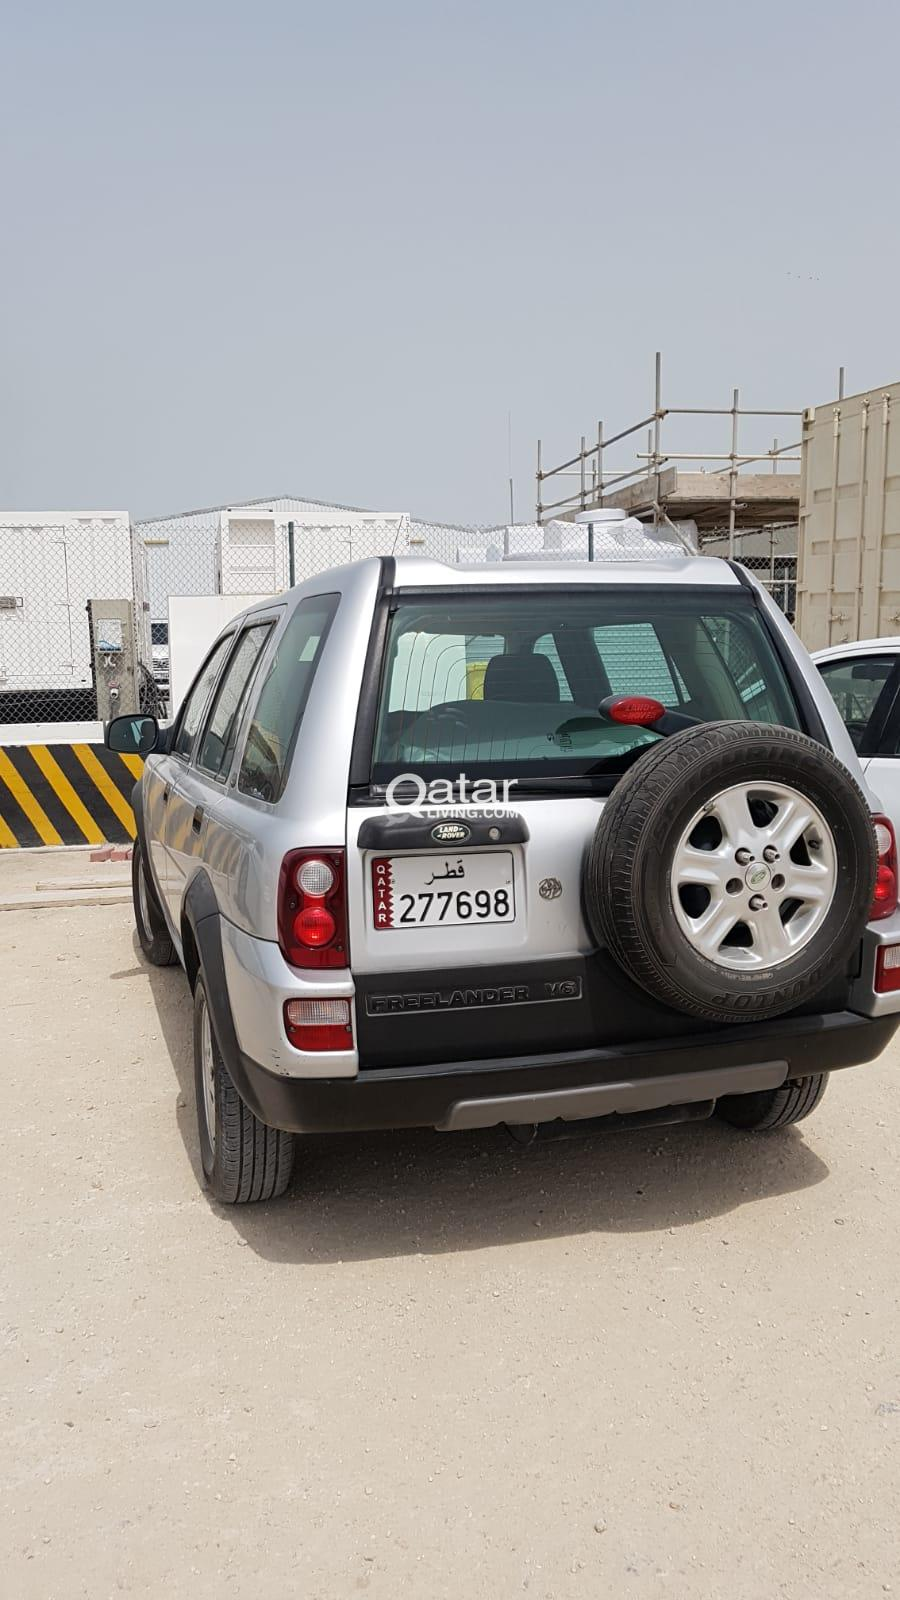 Reduced Price 5000 QR Land Rover 2005 136kms istemara july 2019